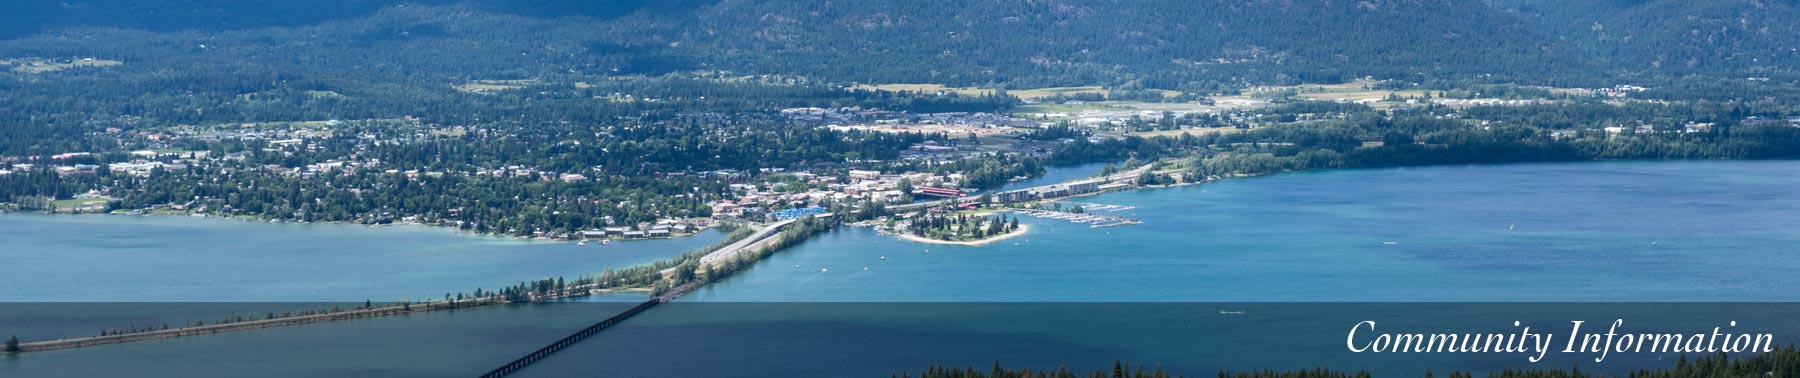 Sandpoint, Idaho community information